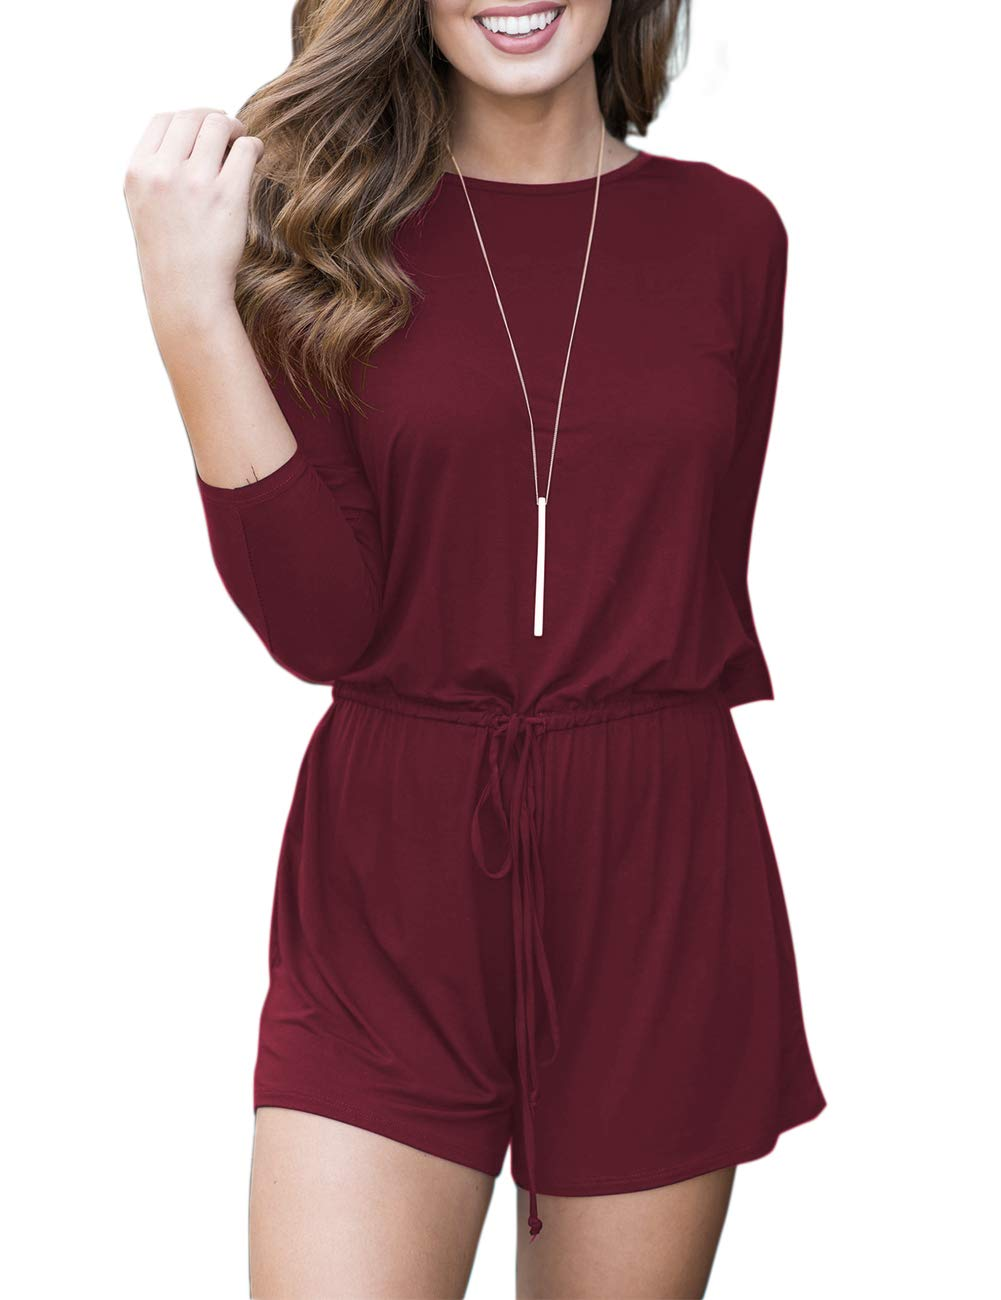 MEROKEETY Women's Casual 3/4 Sleeve Shorts Rompers Jumpsuit with Drawstring